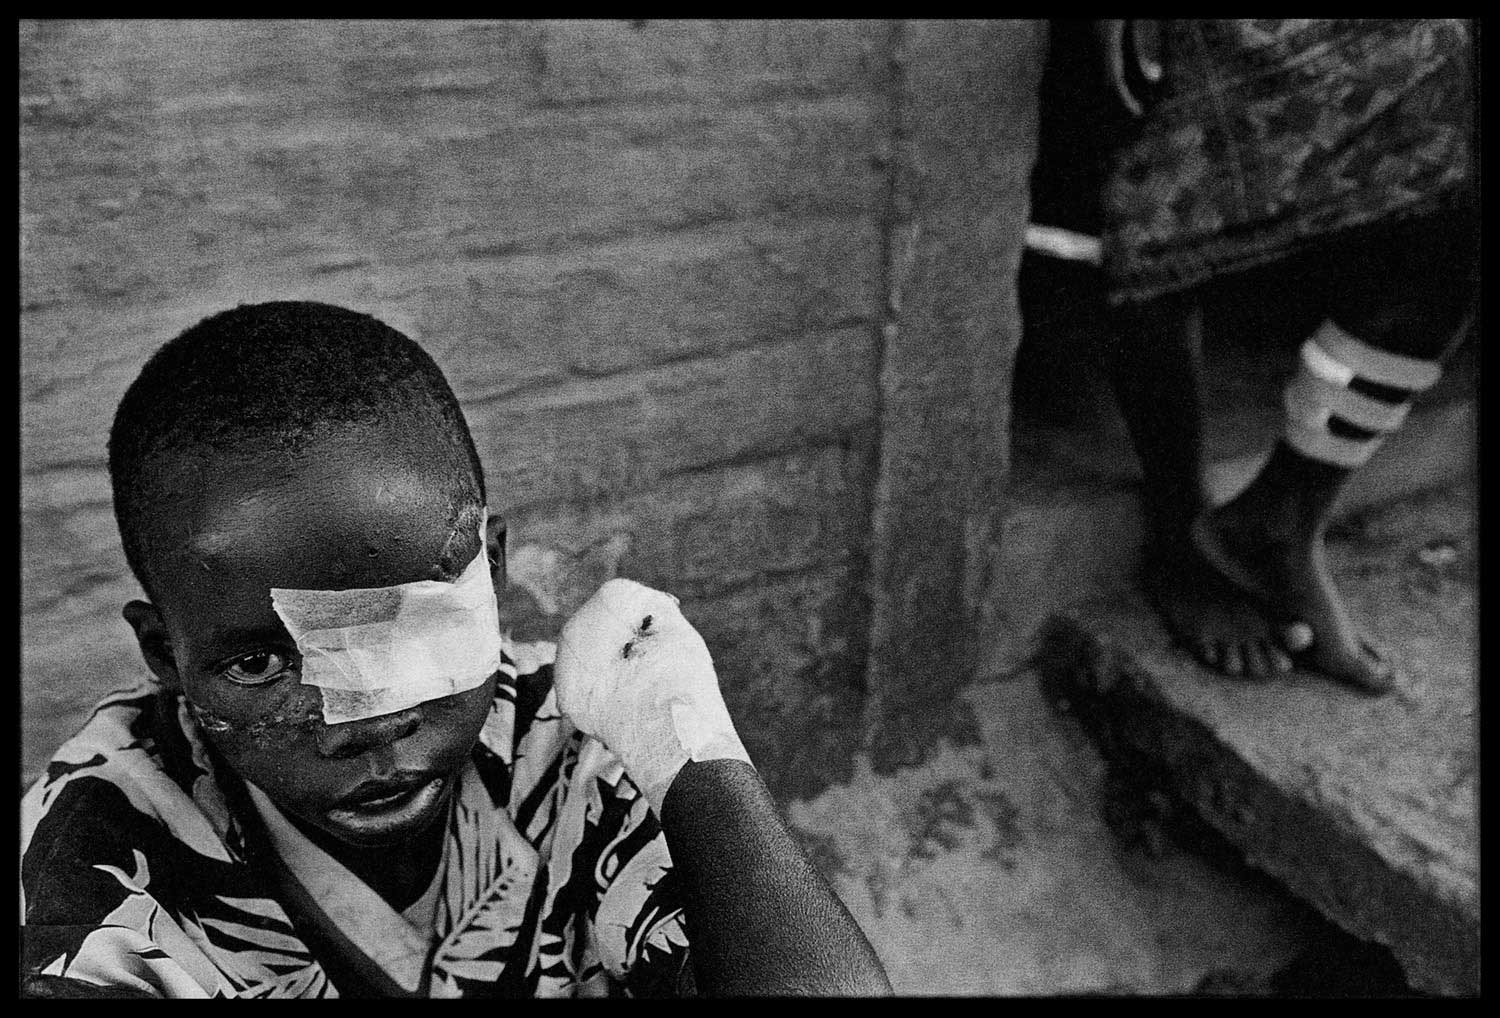 At the Red Cross clinic in Nyanza. Tutsis who had been freed from the death camp were treated for their wounds, Rwanda, 1994.